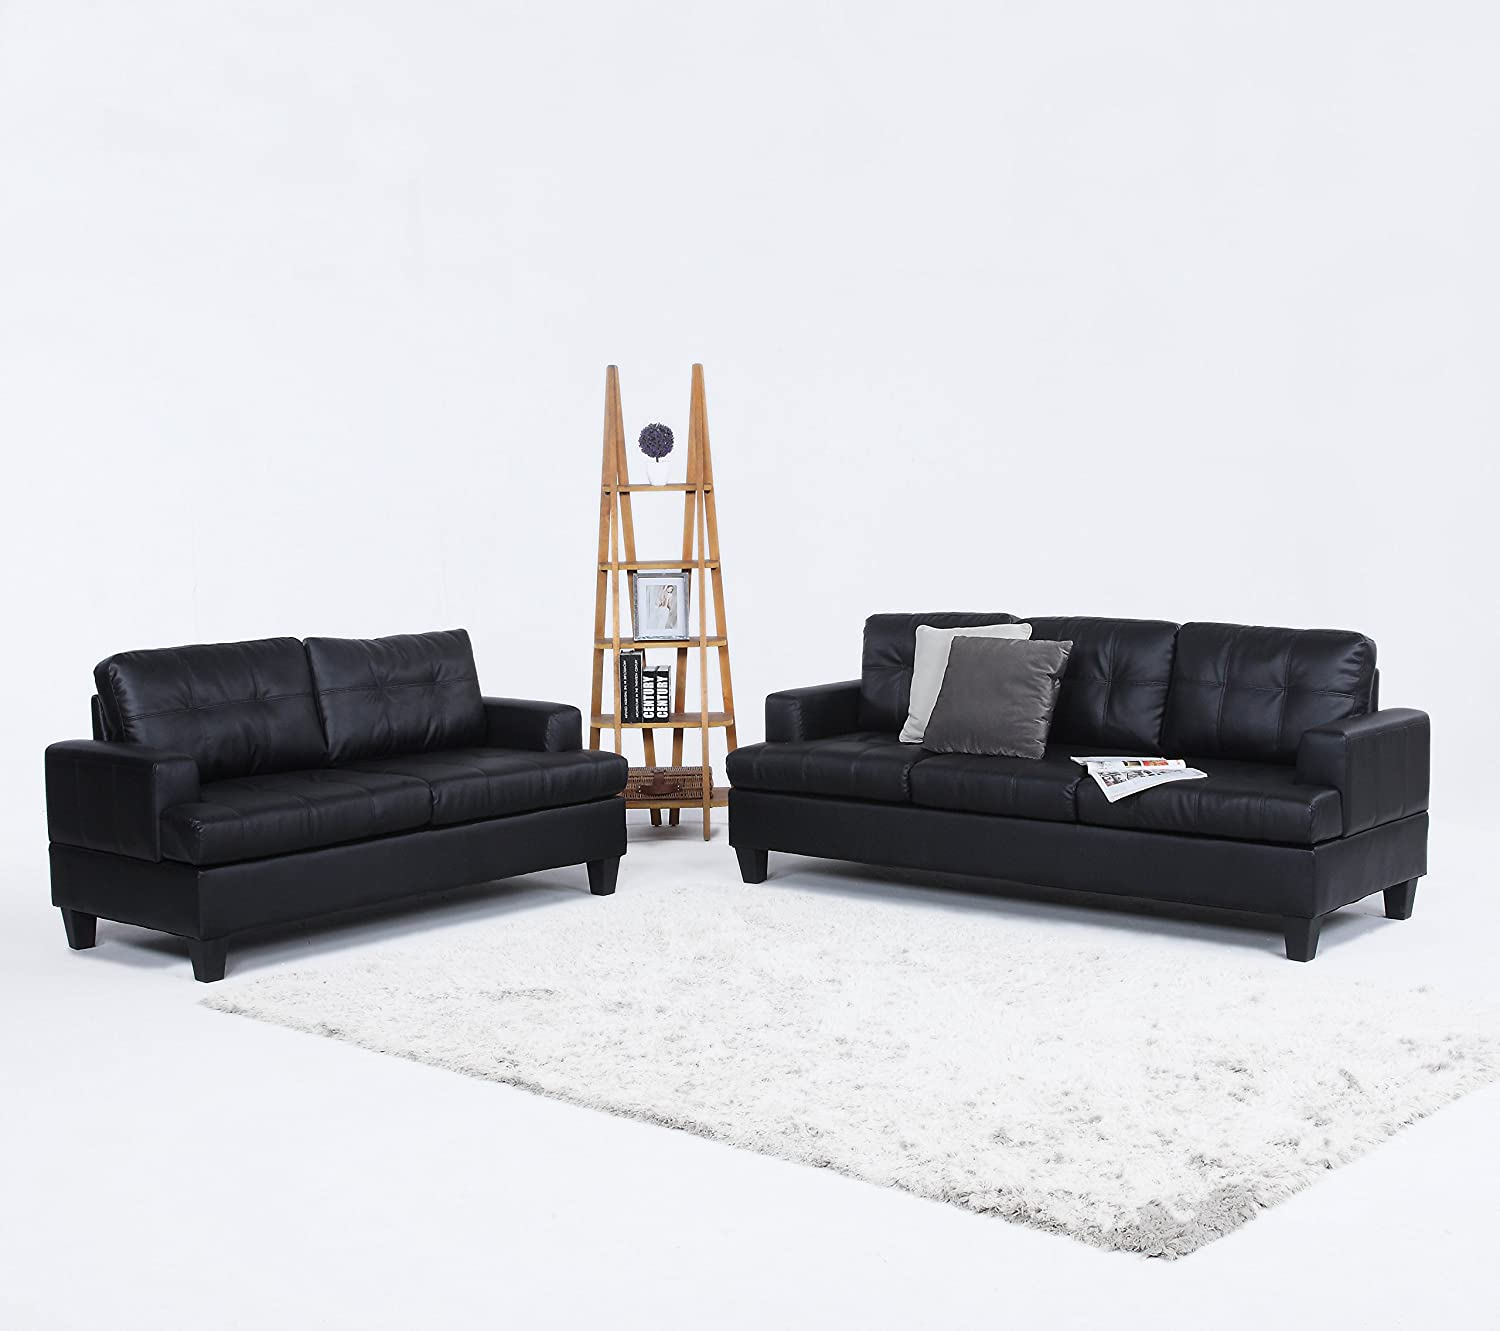 Amazon 2 Piece Modern Black Bonded Leather Sofa and Love Seat